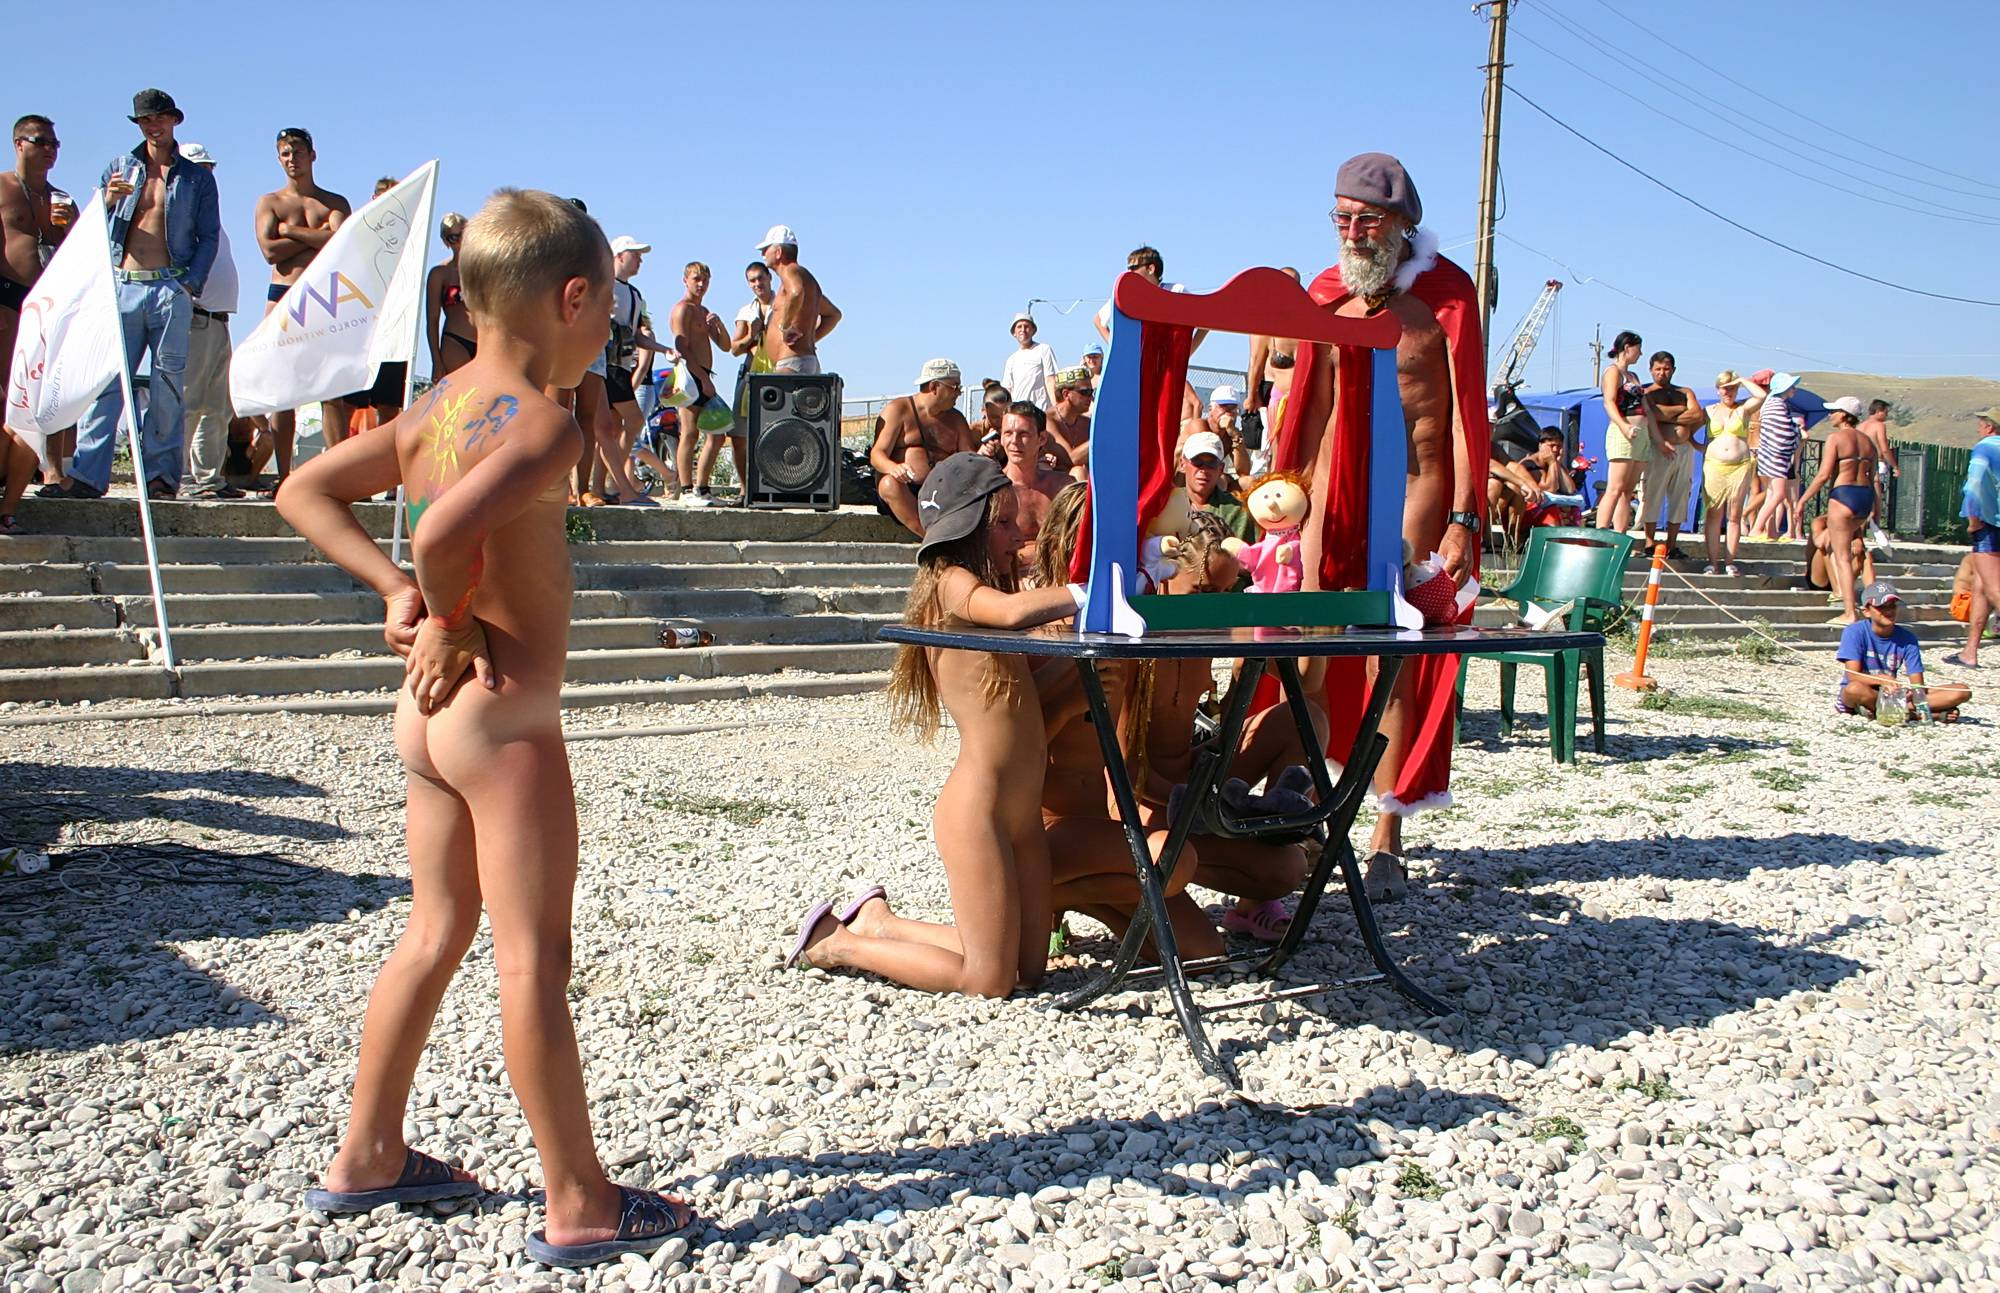 Pure Nudism-Beach Front Puppet Show - 2